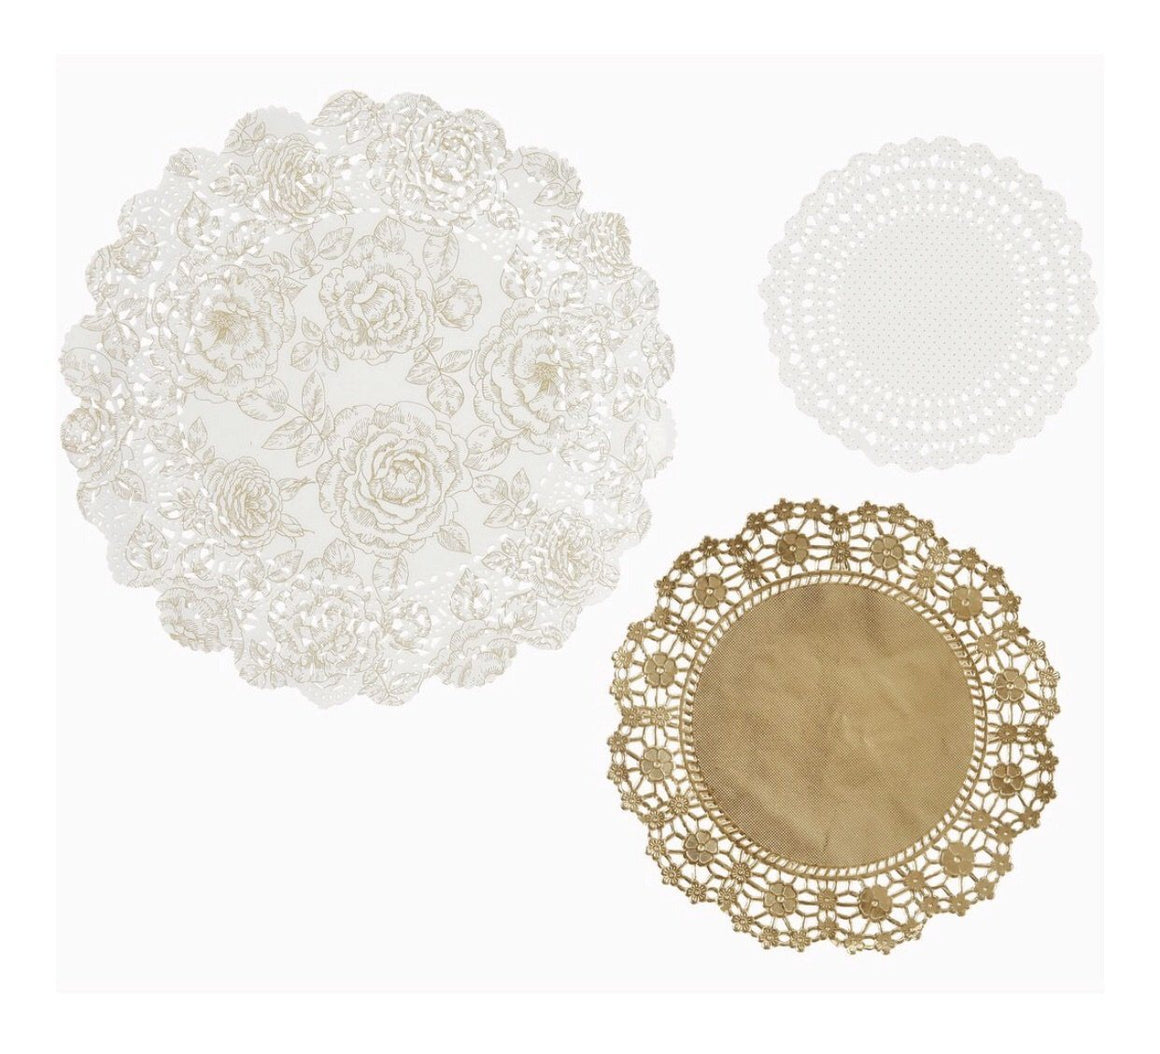 DOILIES - PARTY PORCELAIN GOLD TALKING TABLES